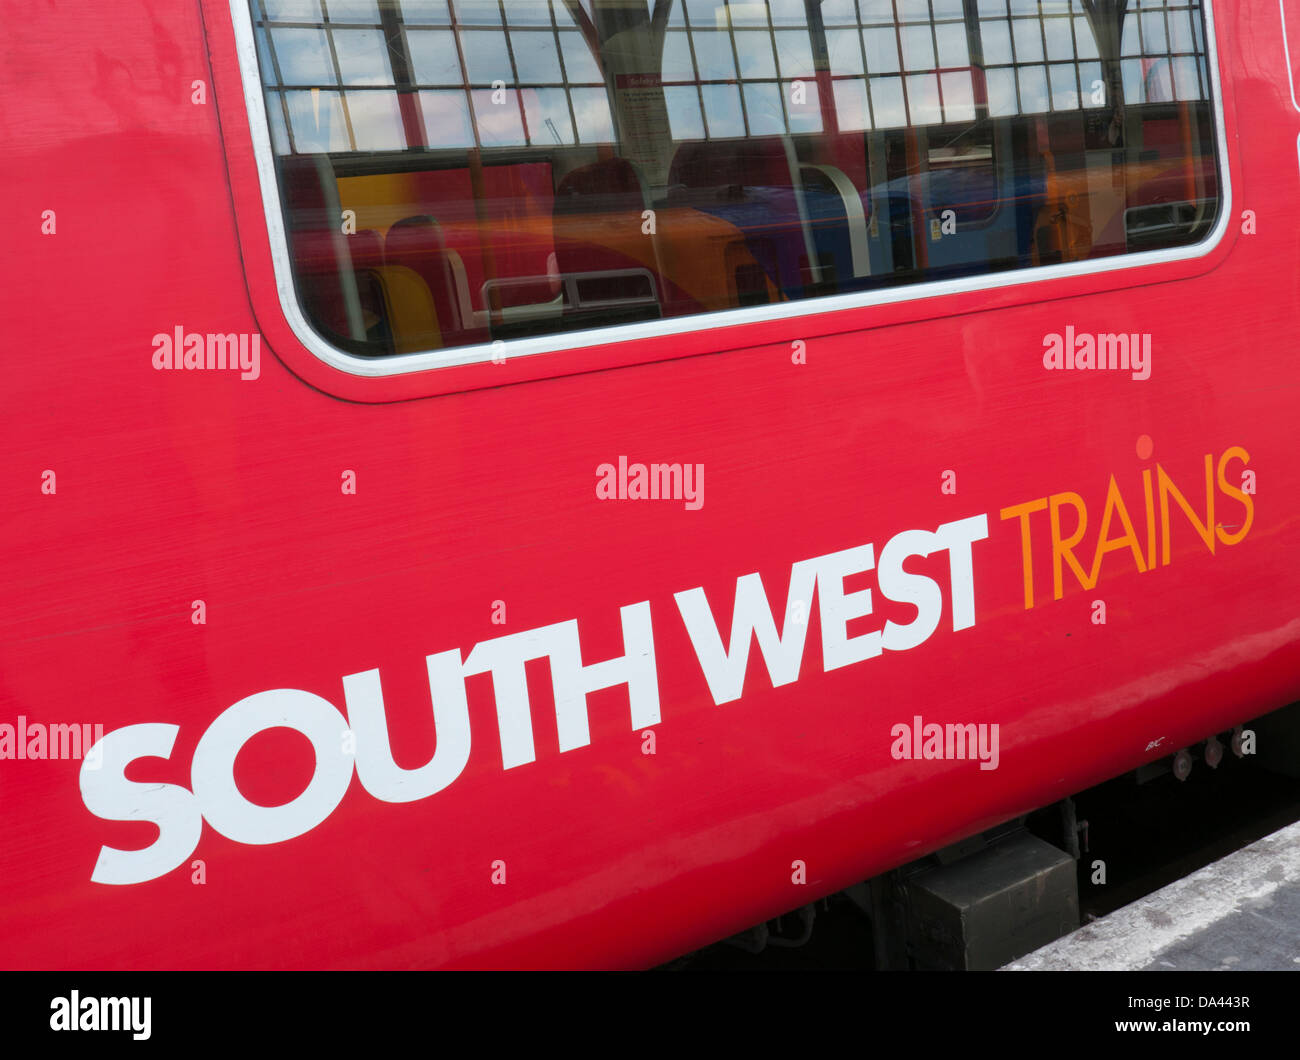 South West Trains in Britain - Stock Image